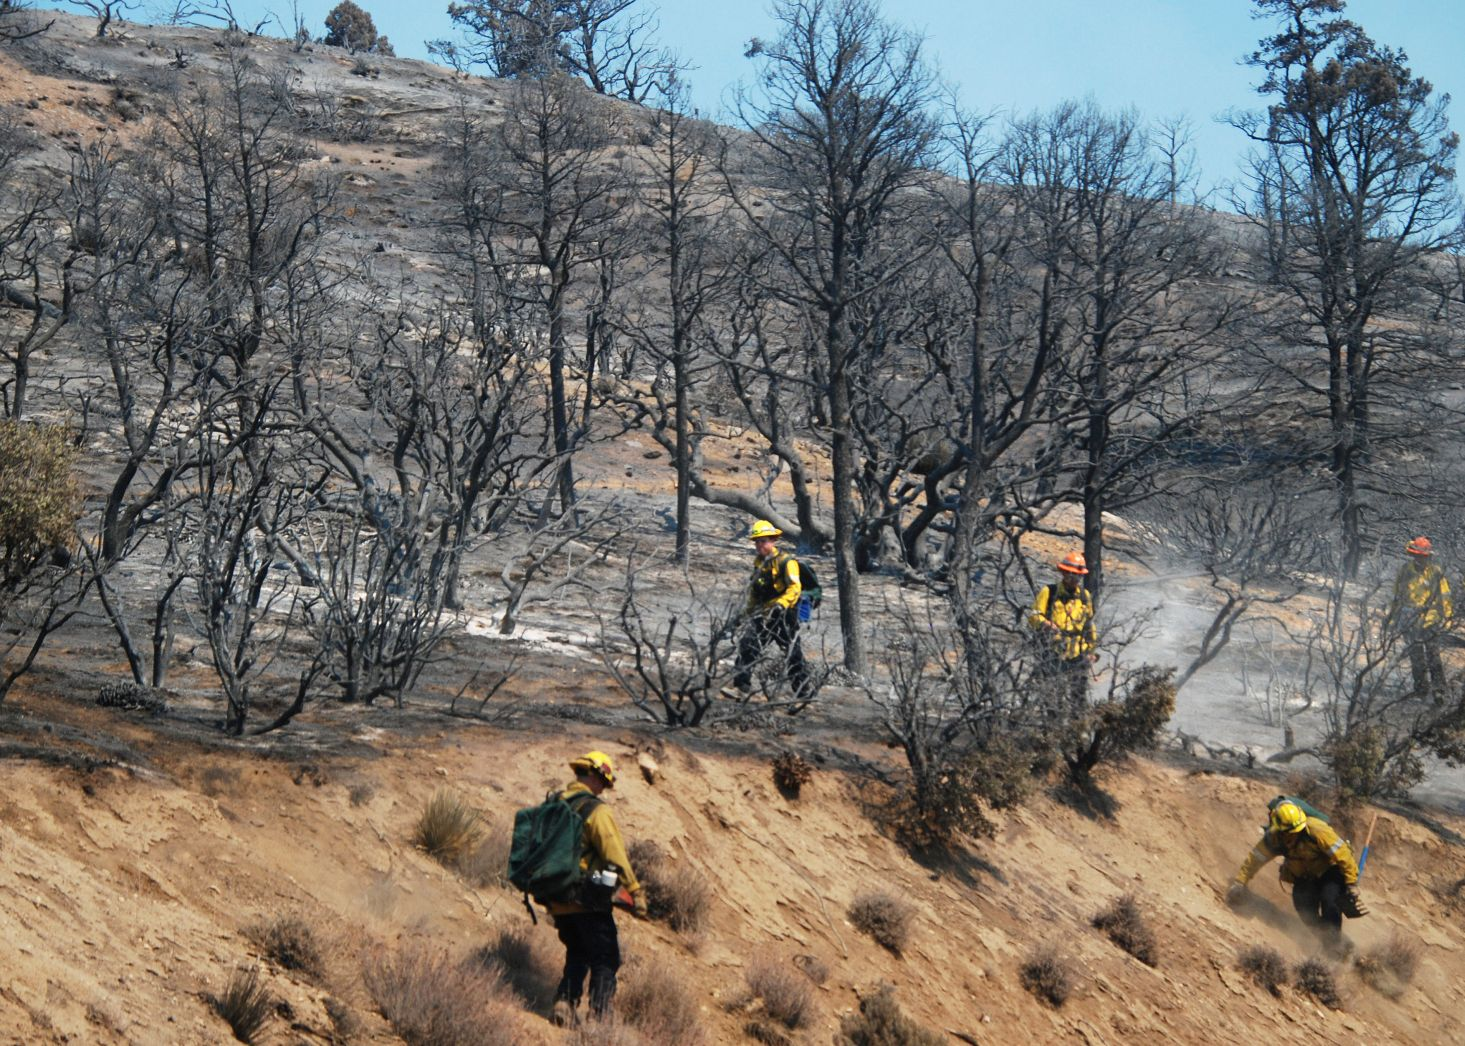 Bobcat fire is 50% contained and not growing much, either